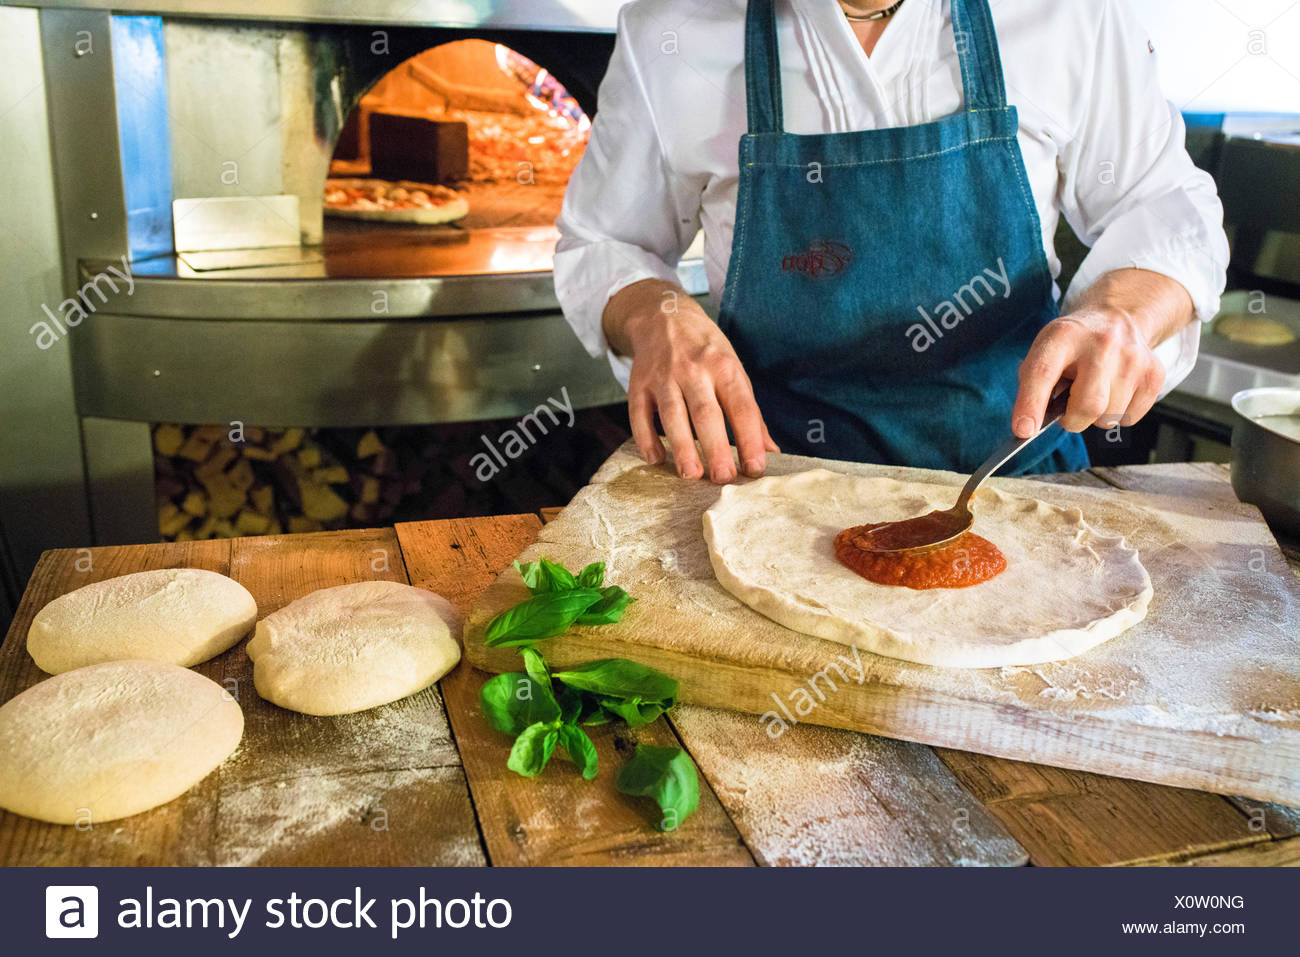 The chef fills the pizza with tomato sauce and fresh ingredients then ready to be cooked in the wood oven Italy - Stock Image